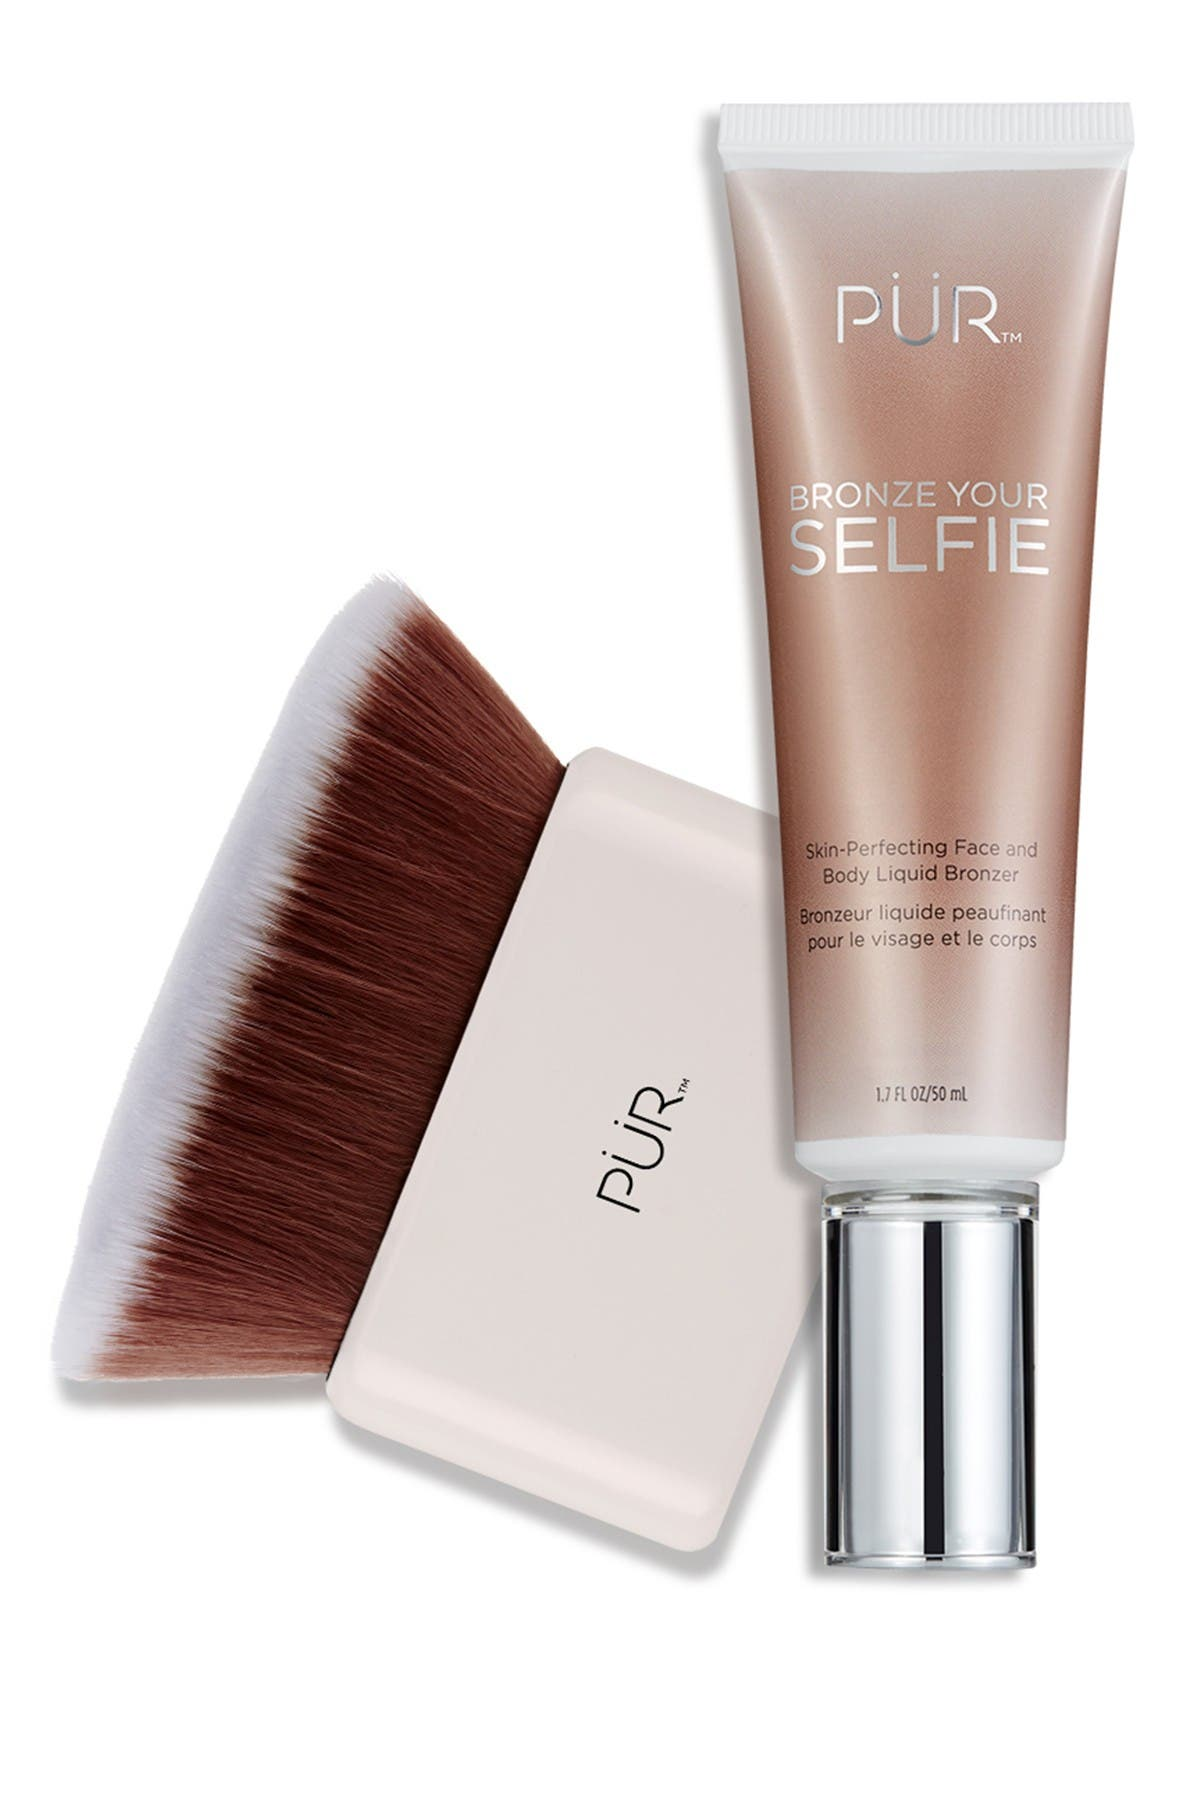 Image of PUR Cosmetics Bronze Your Selfie Face & Body Liquid Bronzer